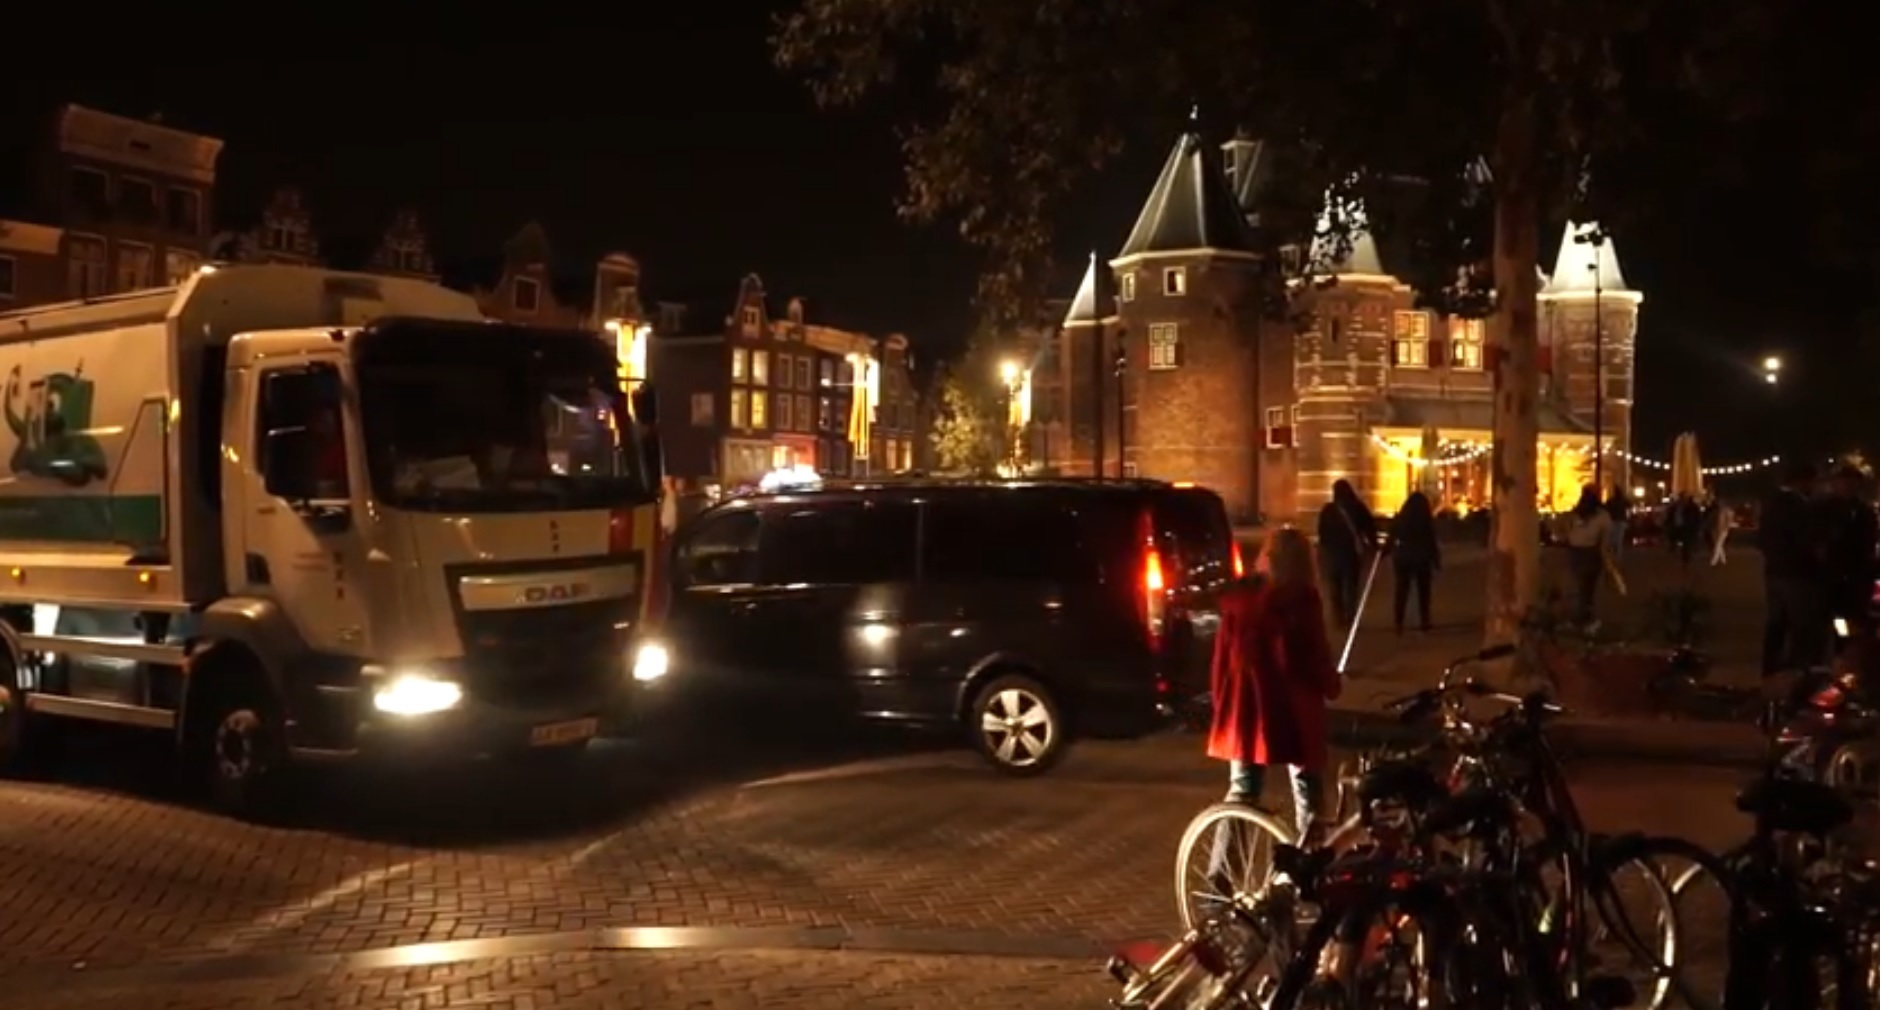 Road Test in Amsterdam Historic Center